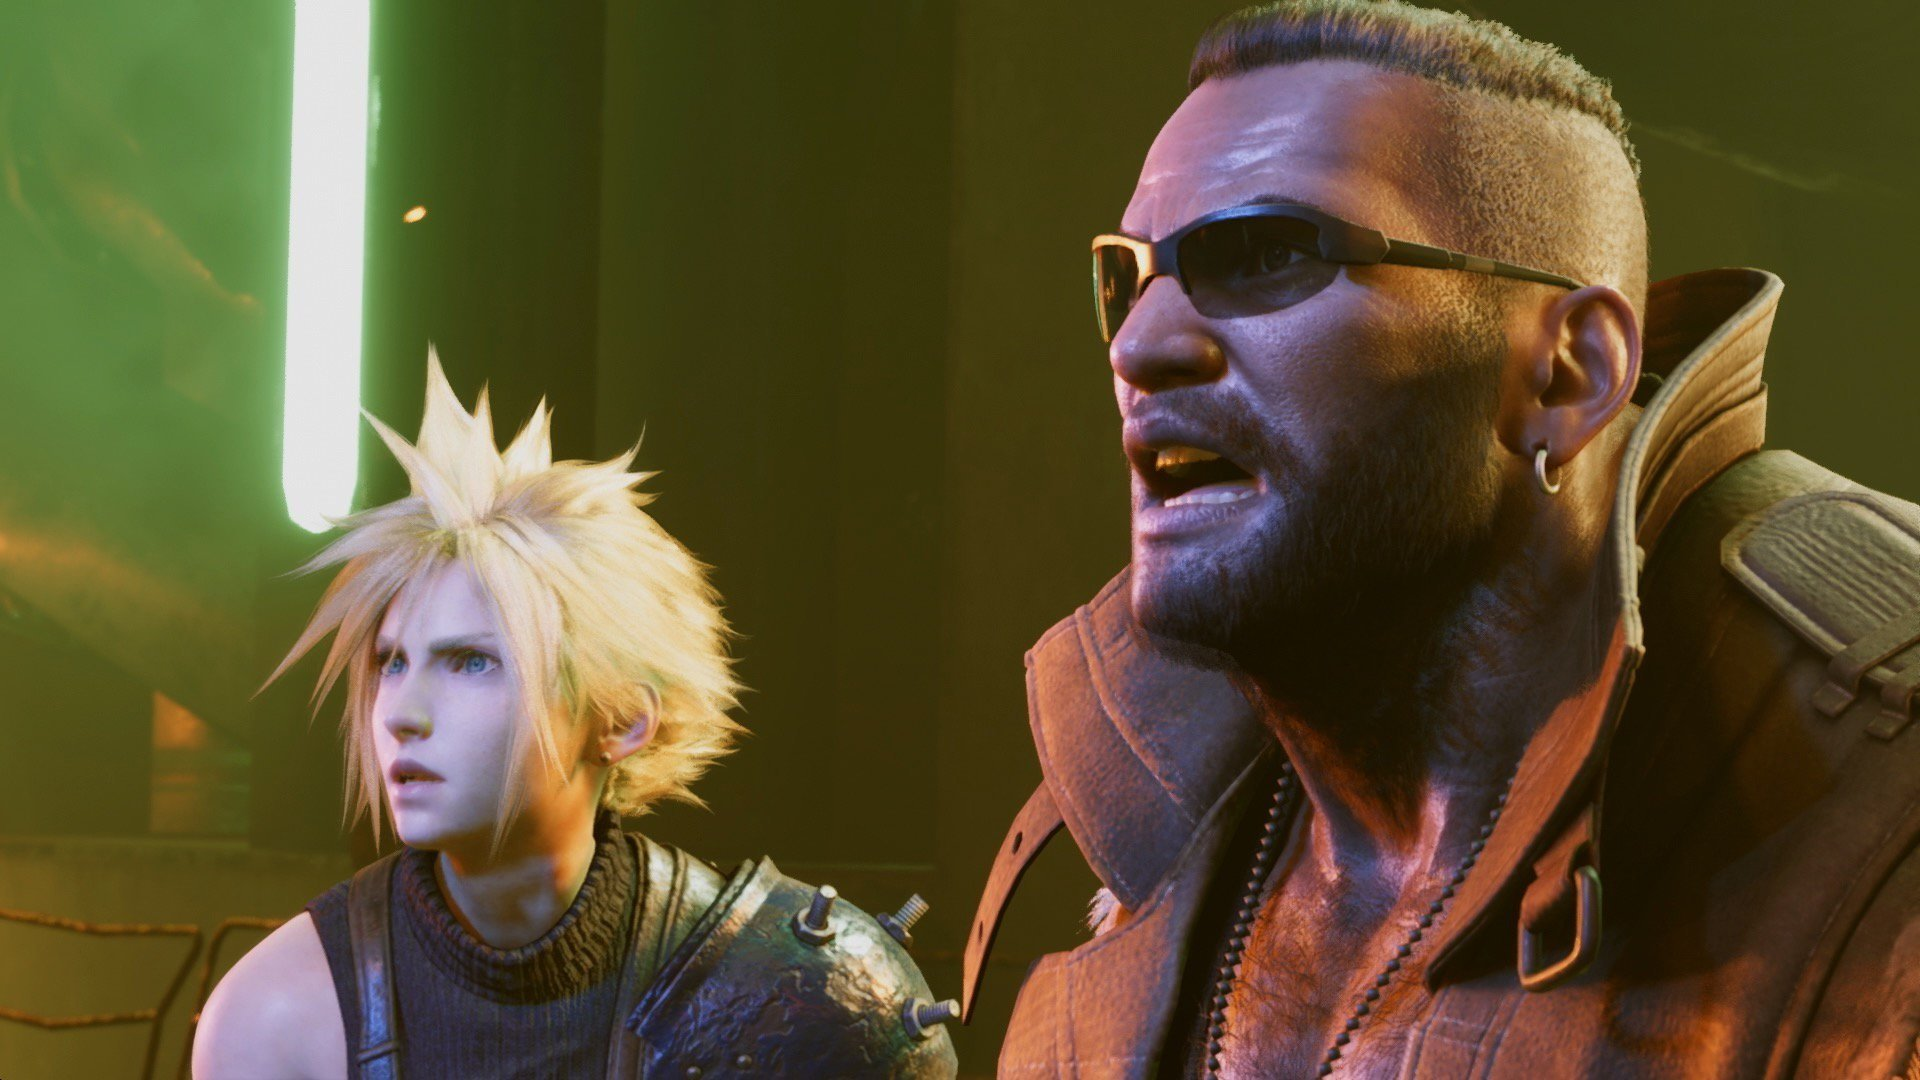 final fantasy 7 remake multiple parts